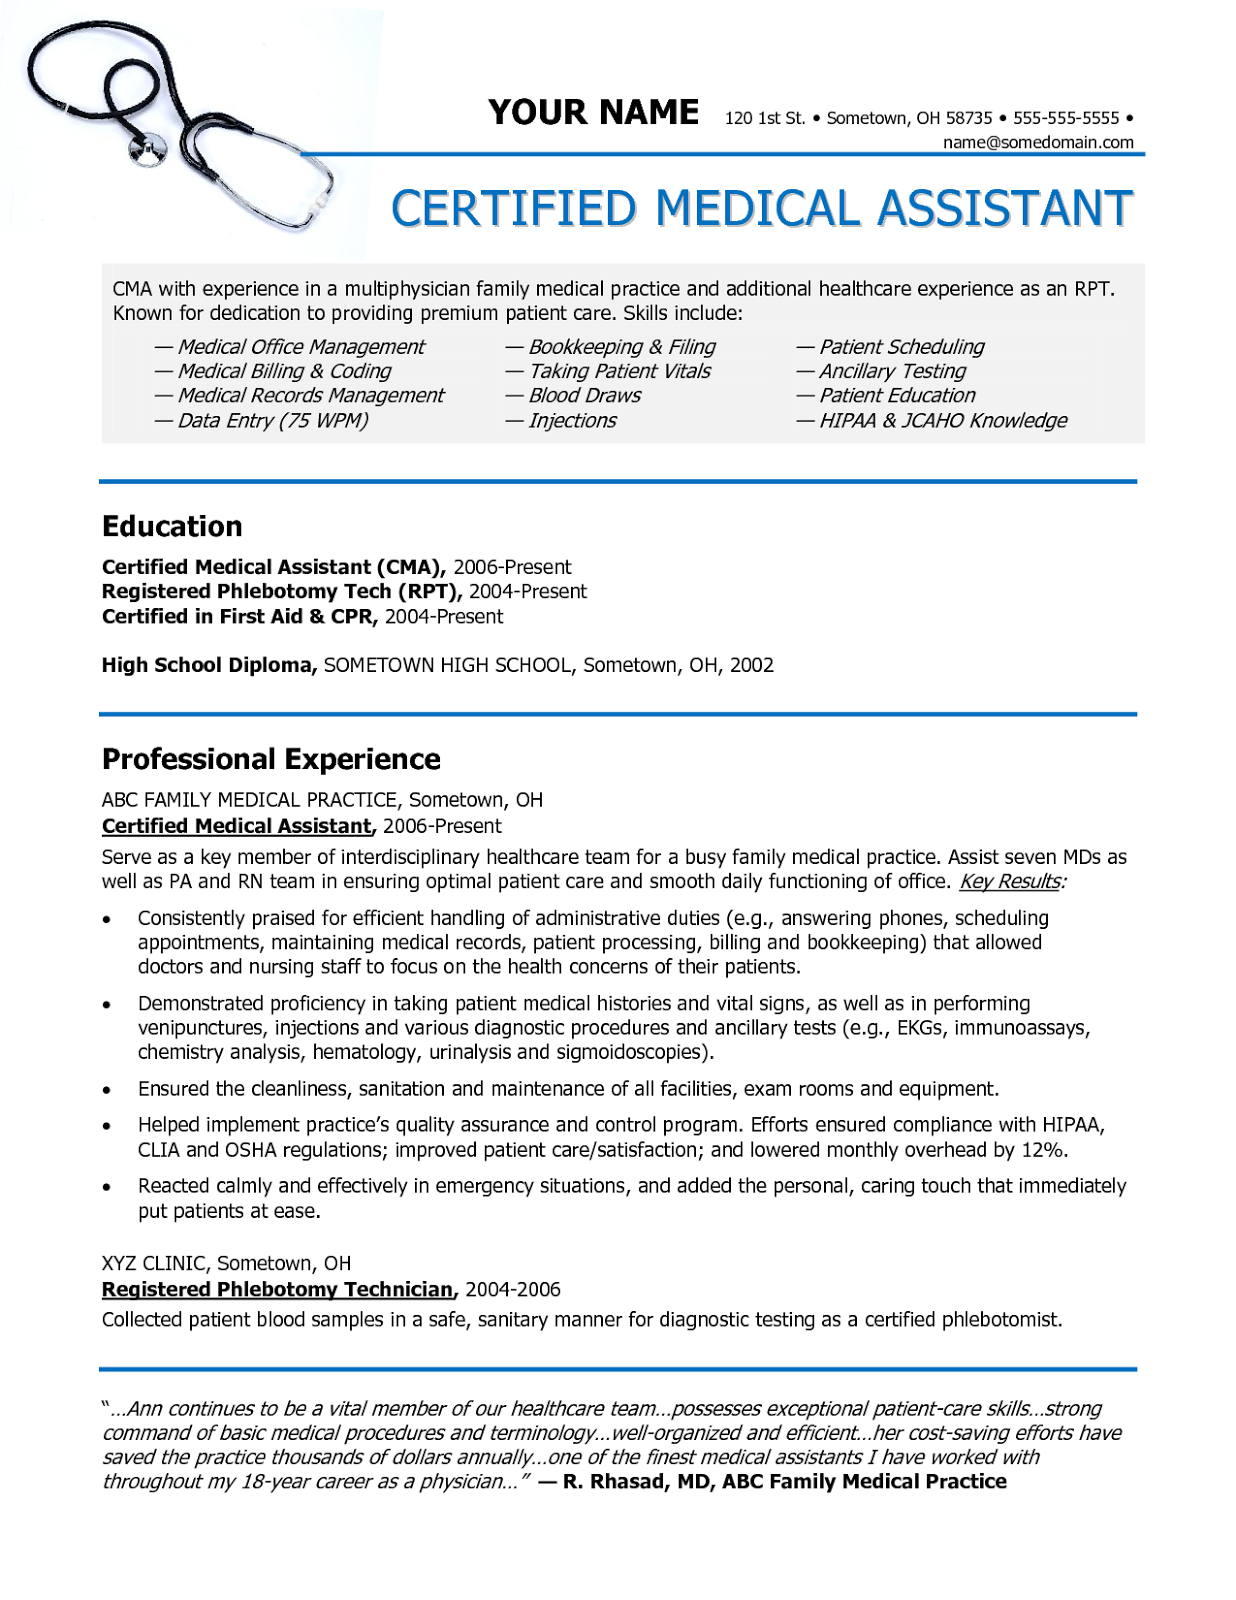 medical assistant resumes samples sample of a medical assistant resume sample resumes medical assistant resume sample - Medical Assistant Resume Objective Examples